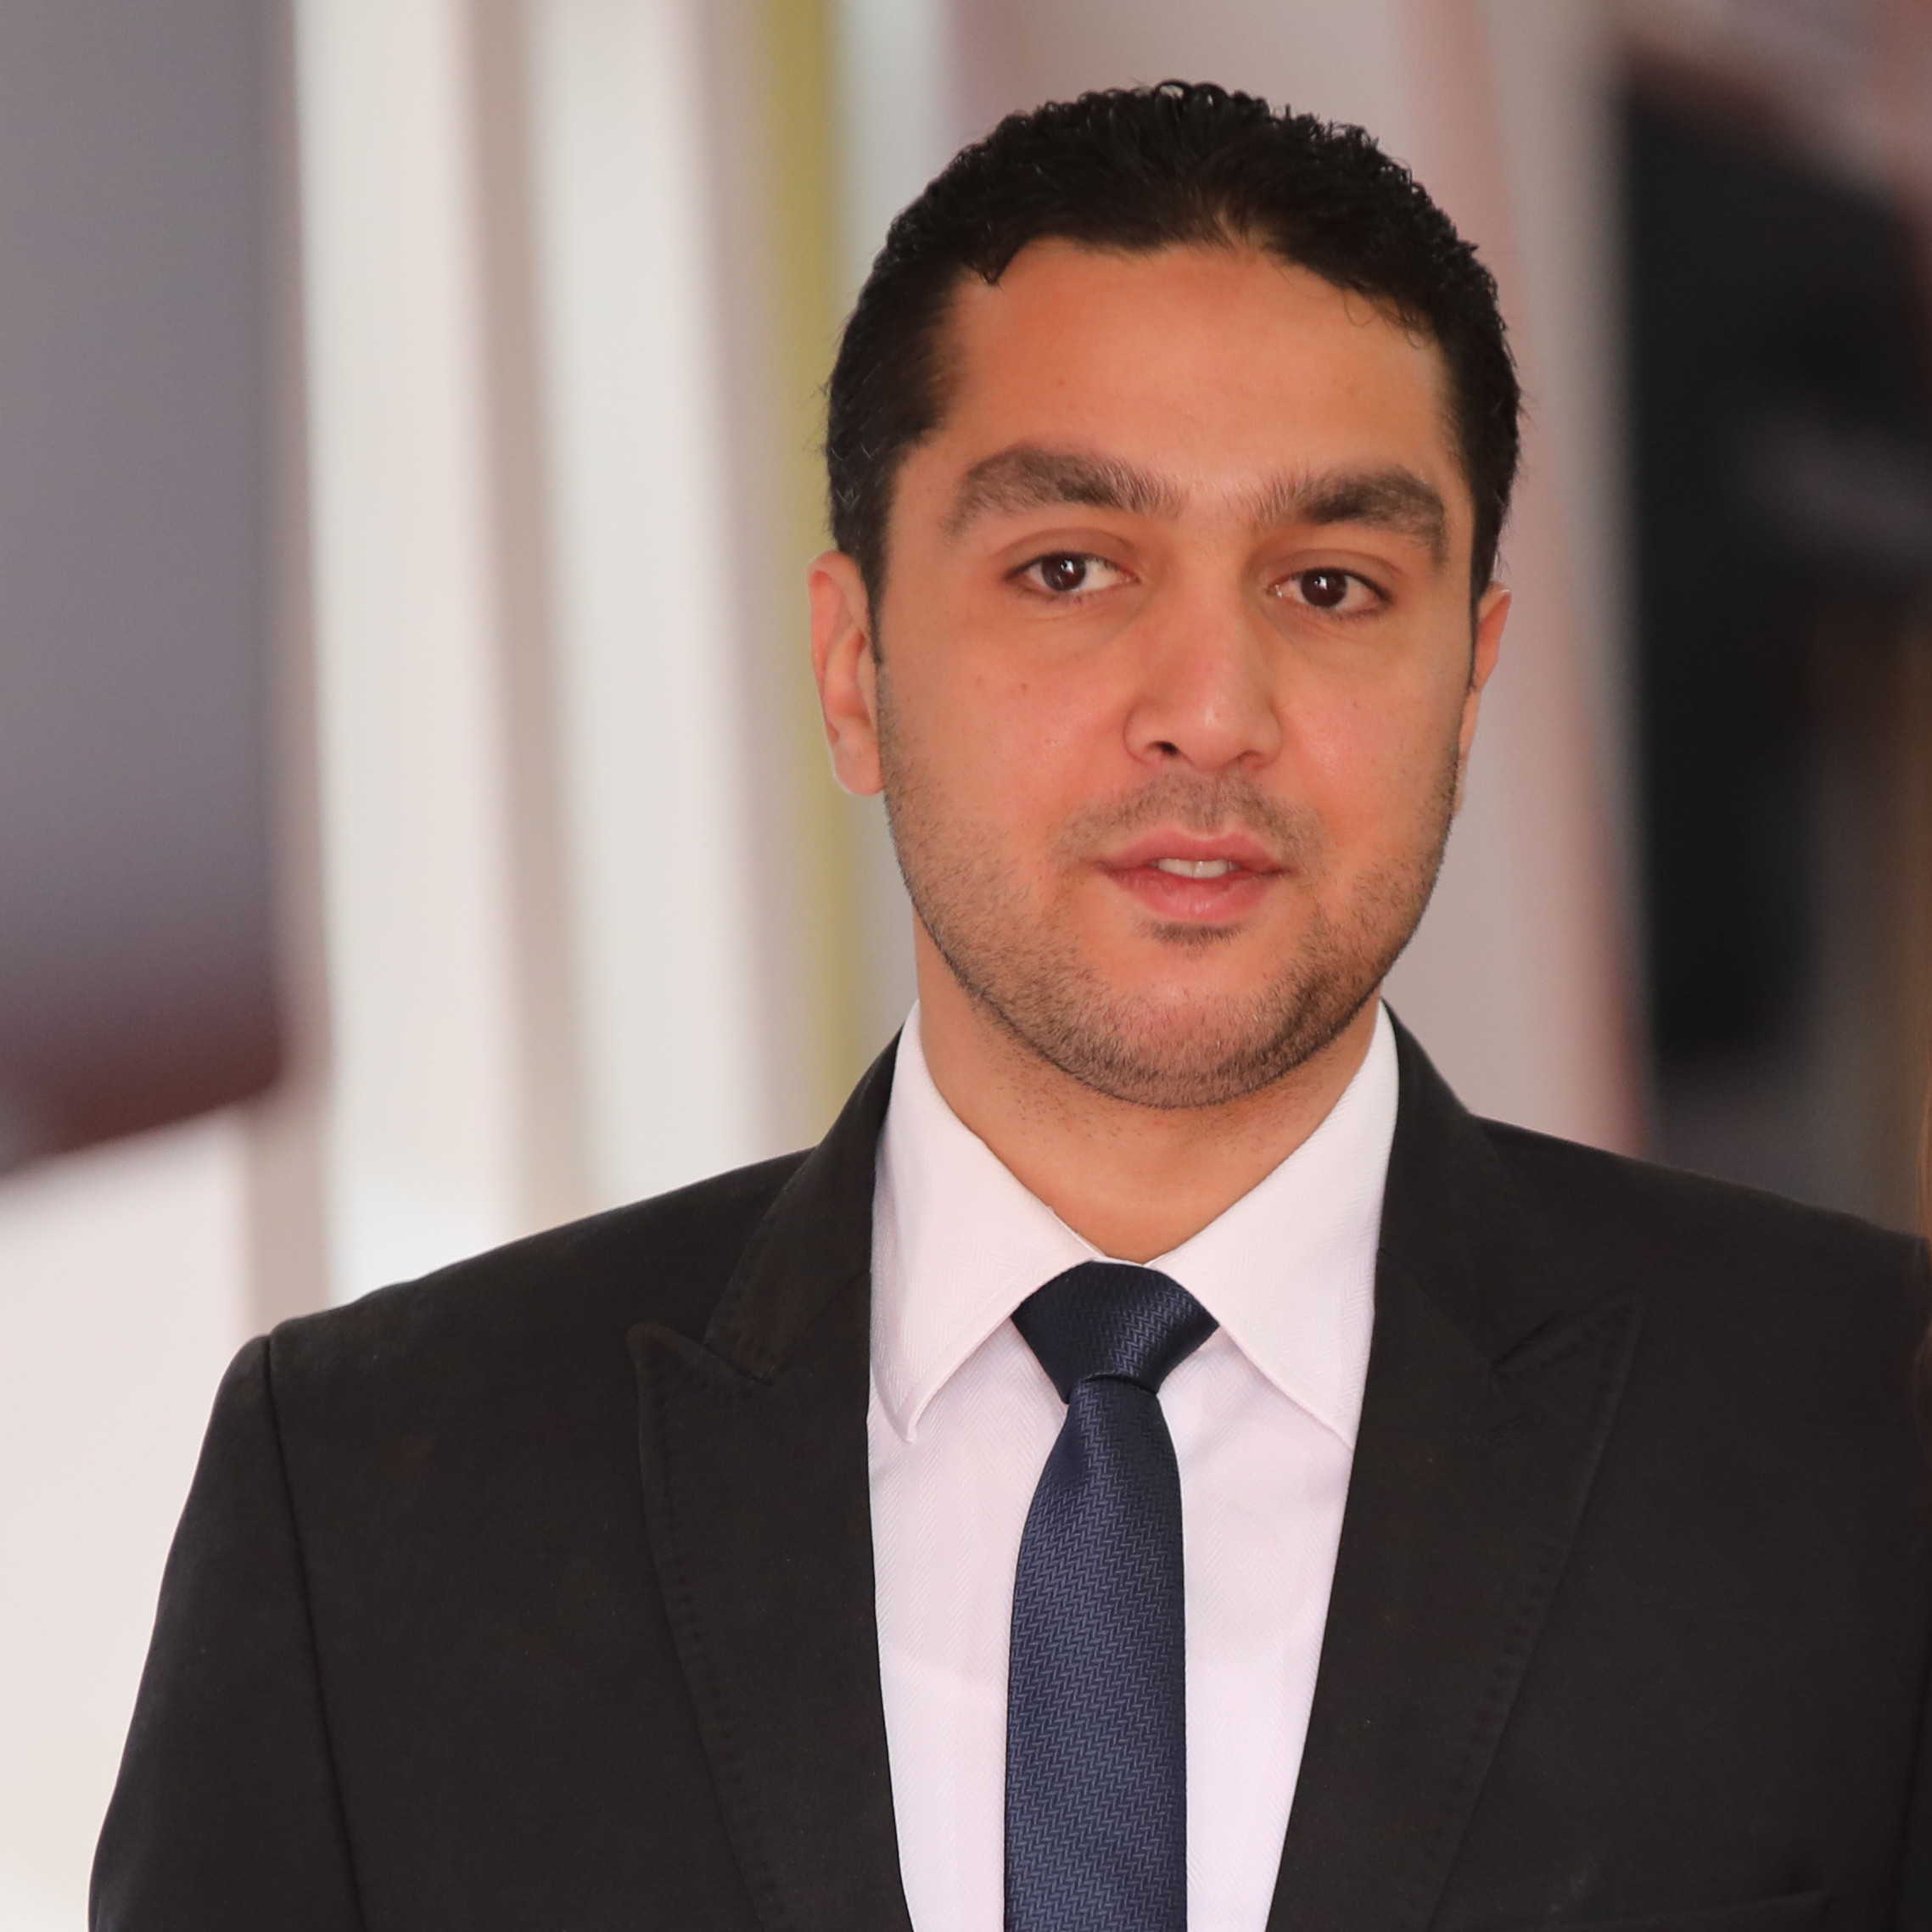 Youssef Tarek Marketing and Communication Manager - Iraq at